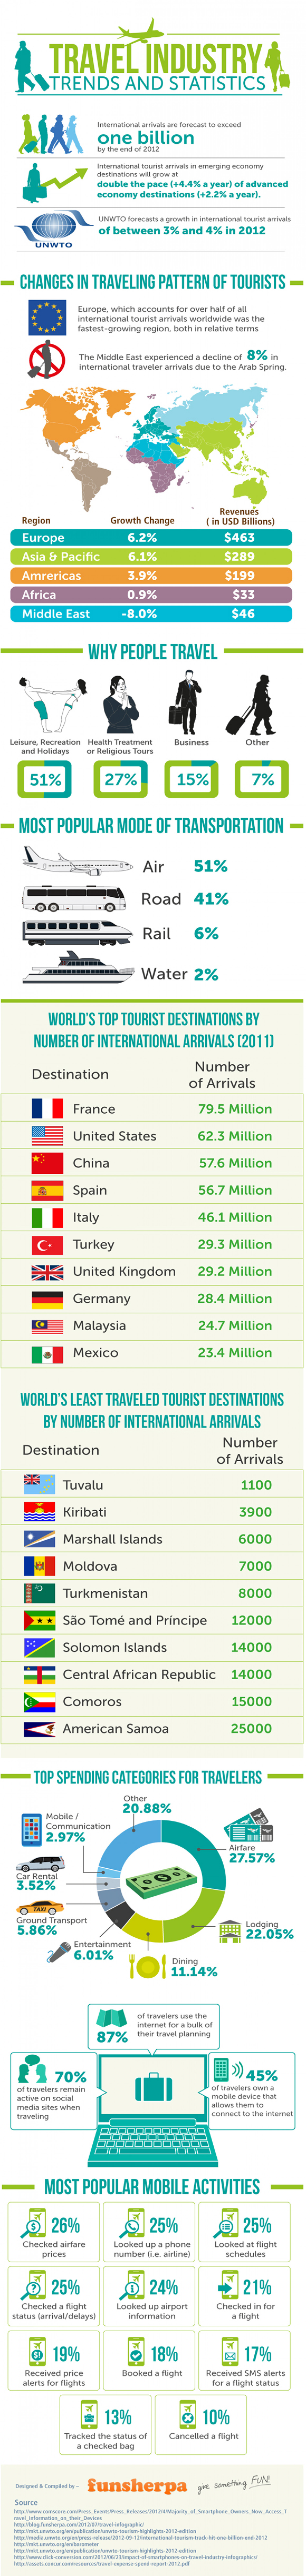 Travel Industry Trends 2012 Infographic